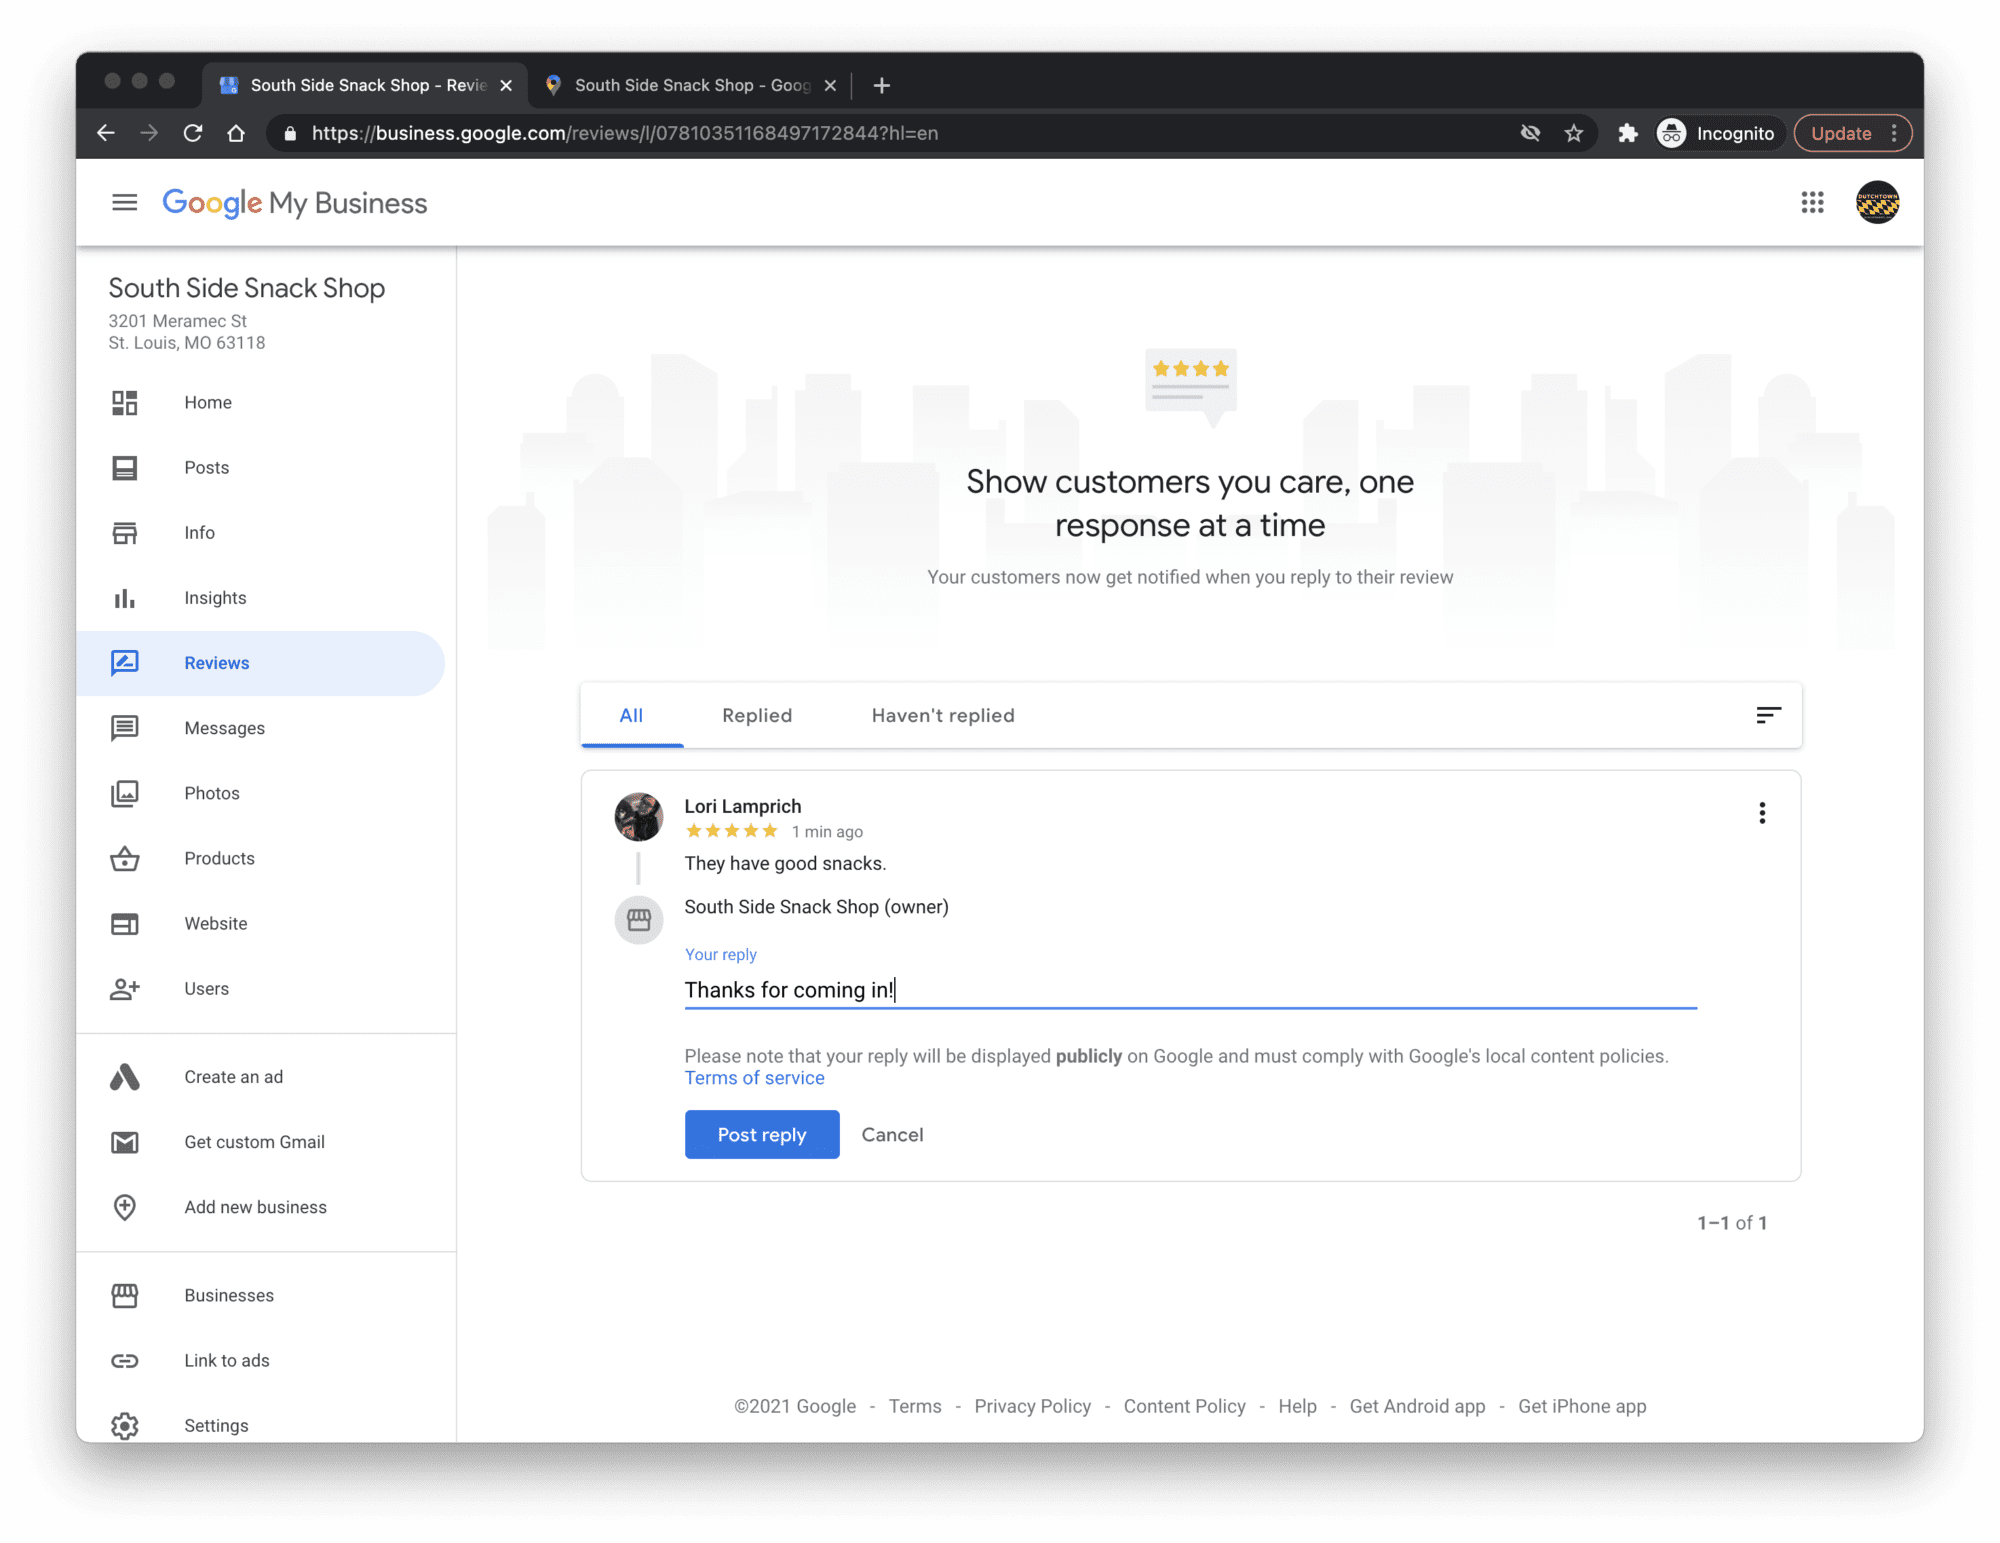 Replying to reviews in Google My Business.